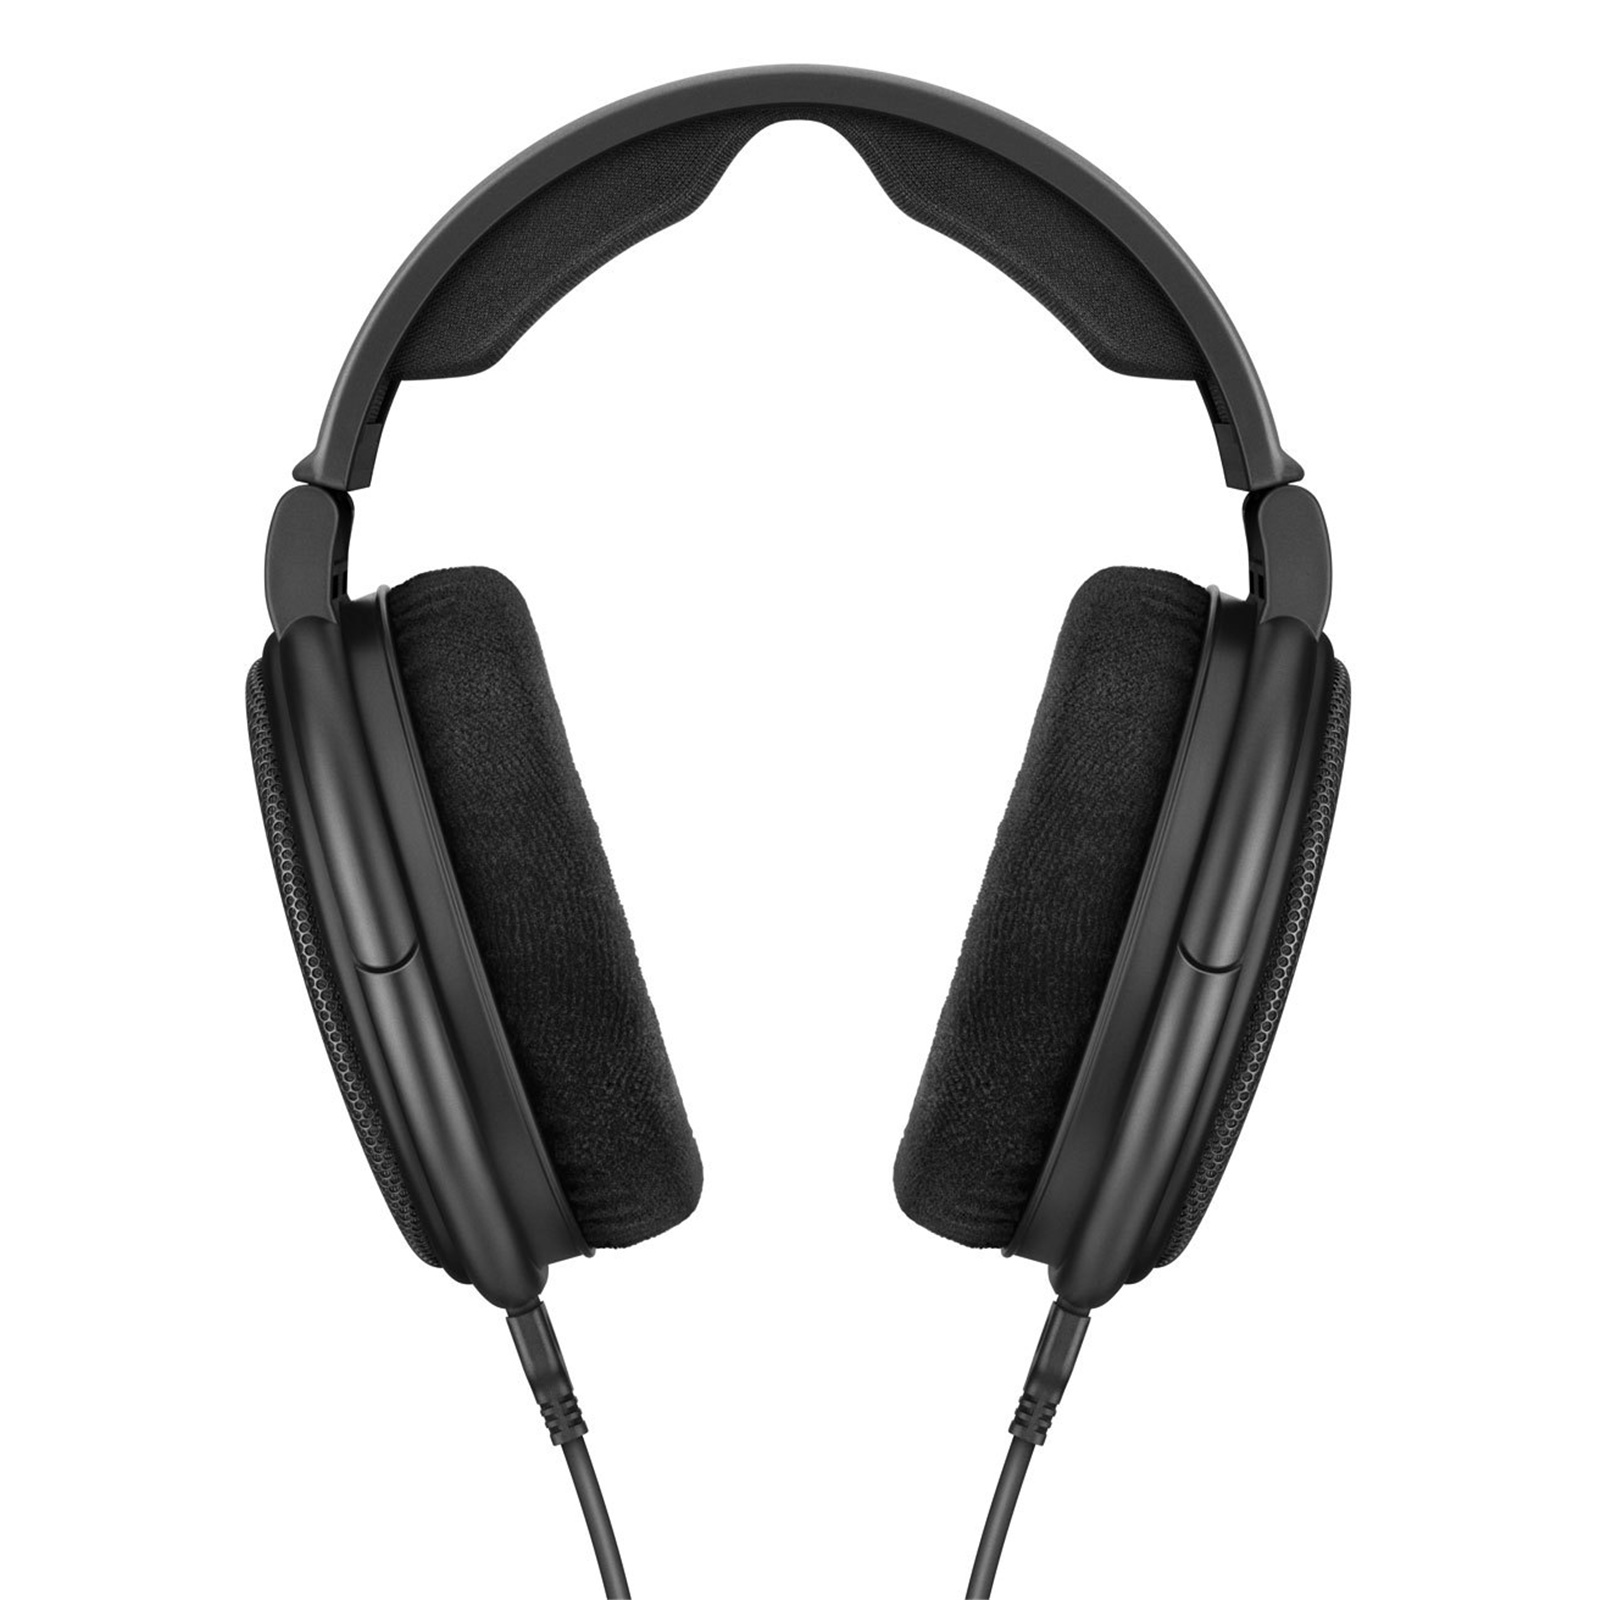 e4f432d7946 The Sennheiser Hd 660 S Open Backed Premium Audiophile Reference